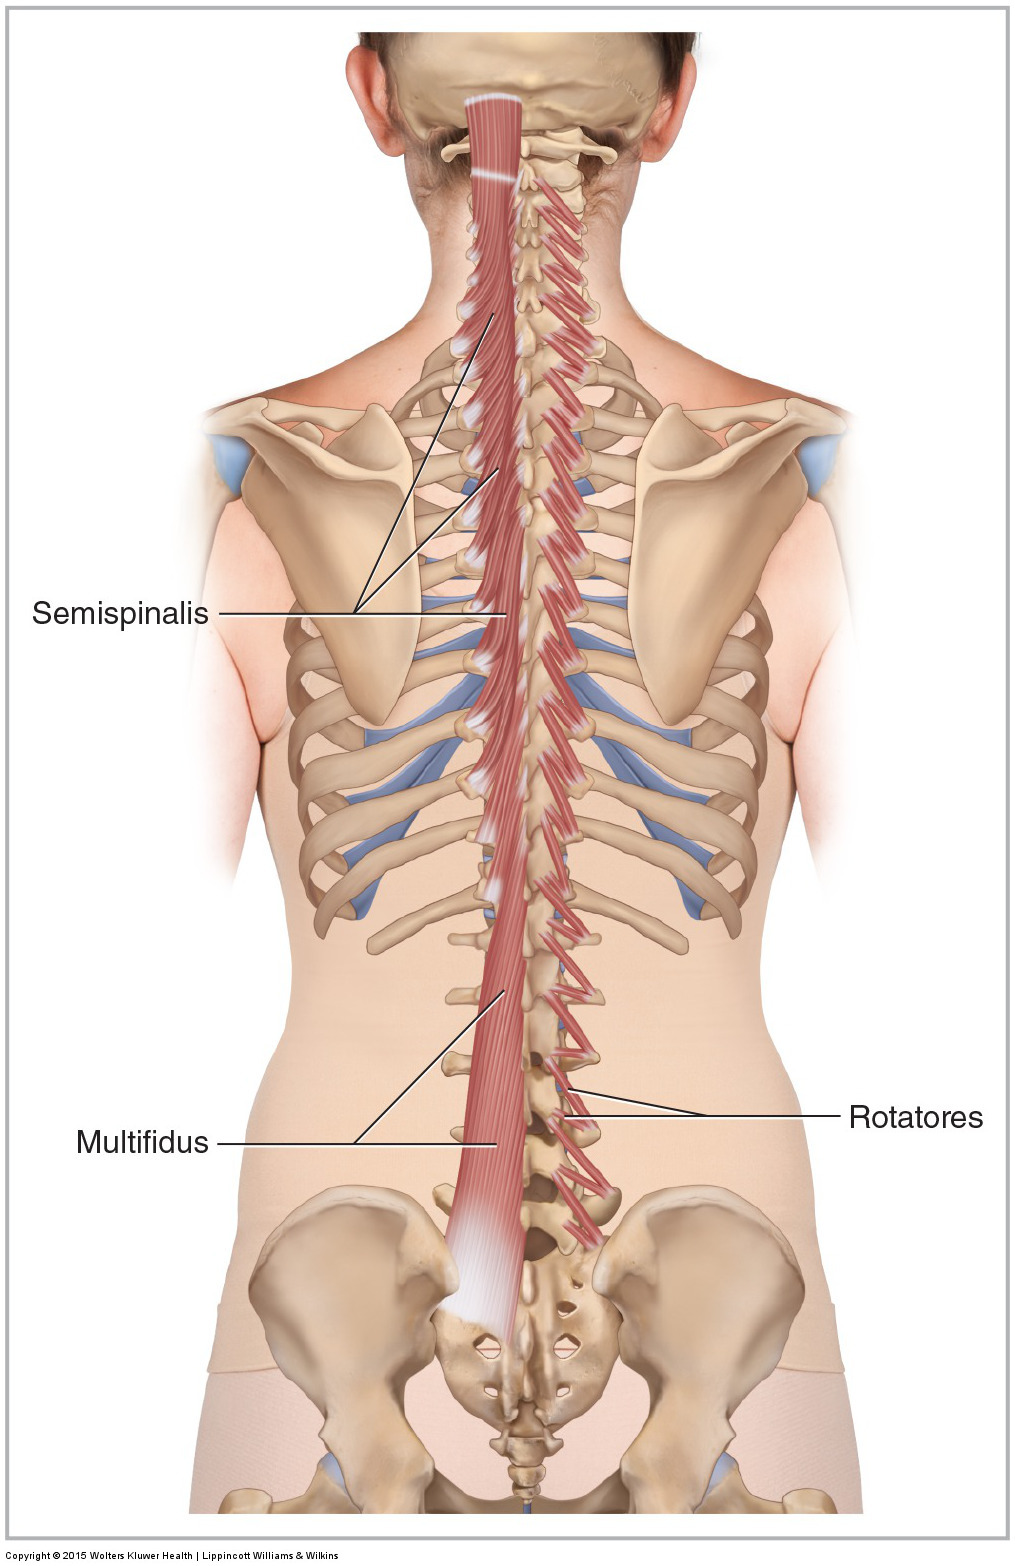 Muscles Of The Lumbar Spine Of The Trunk